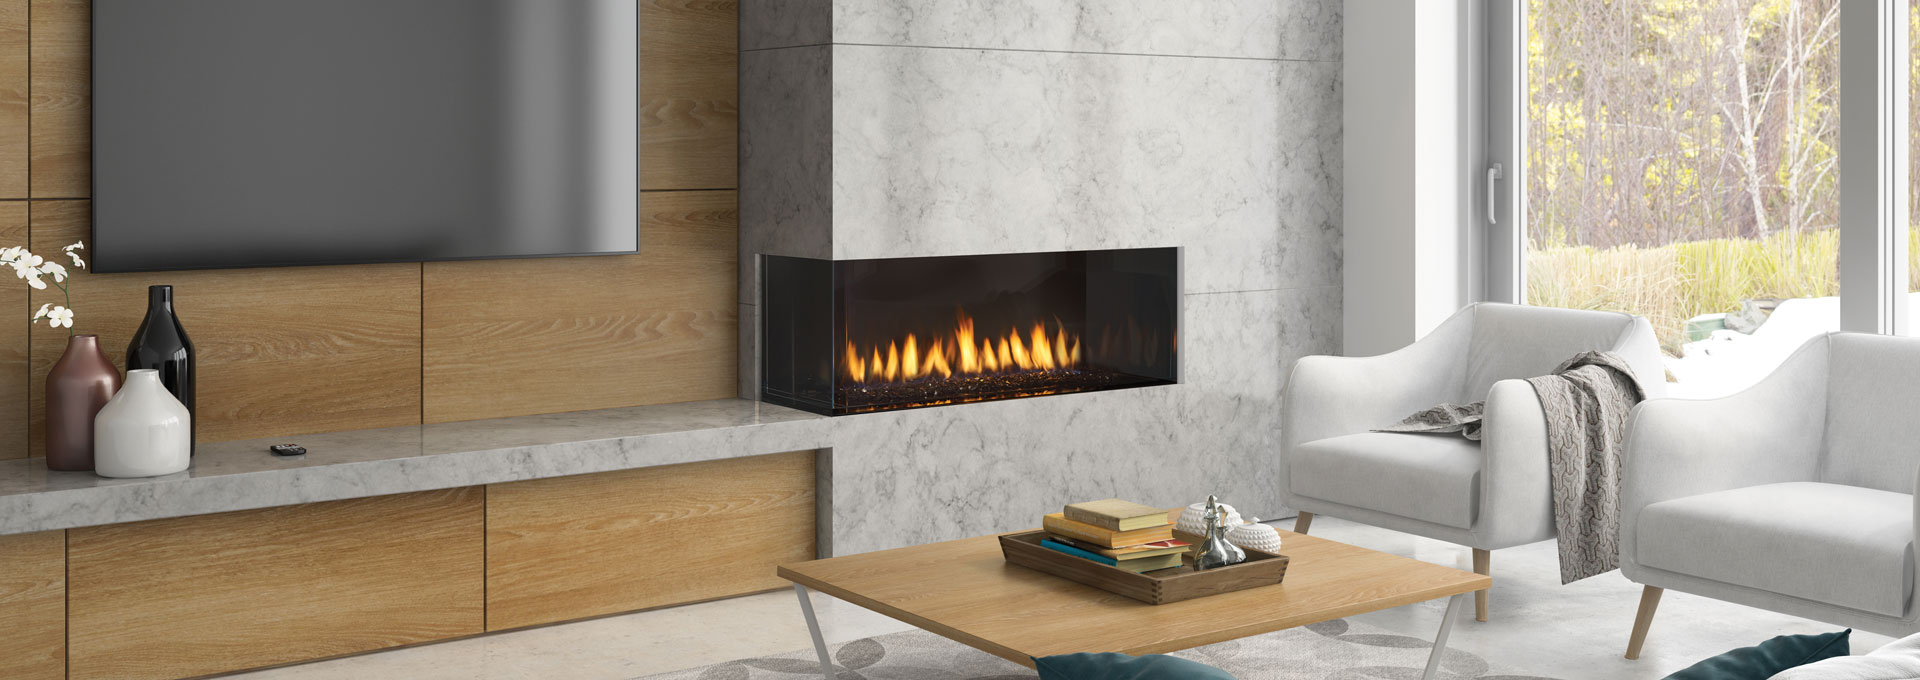 winning gas most hearth fireplace mhc crushed flames artistic category contemporary glass evolved from thru heatnglo award rise ever made series fireplaces model gasfire the this modern